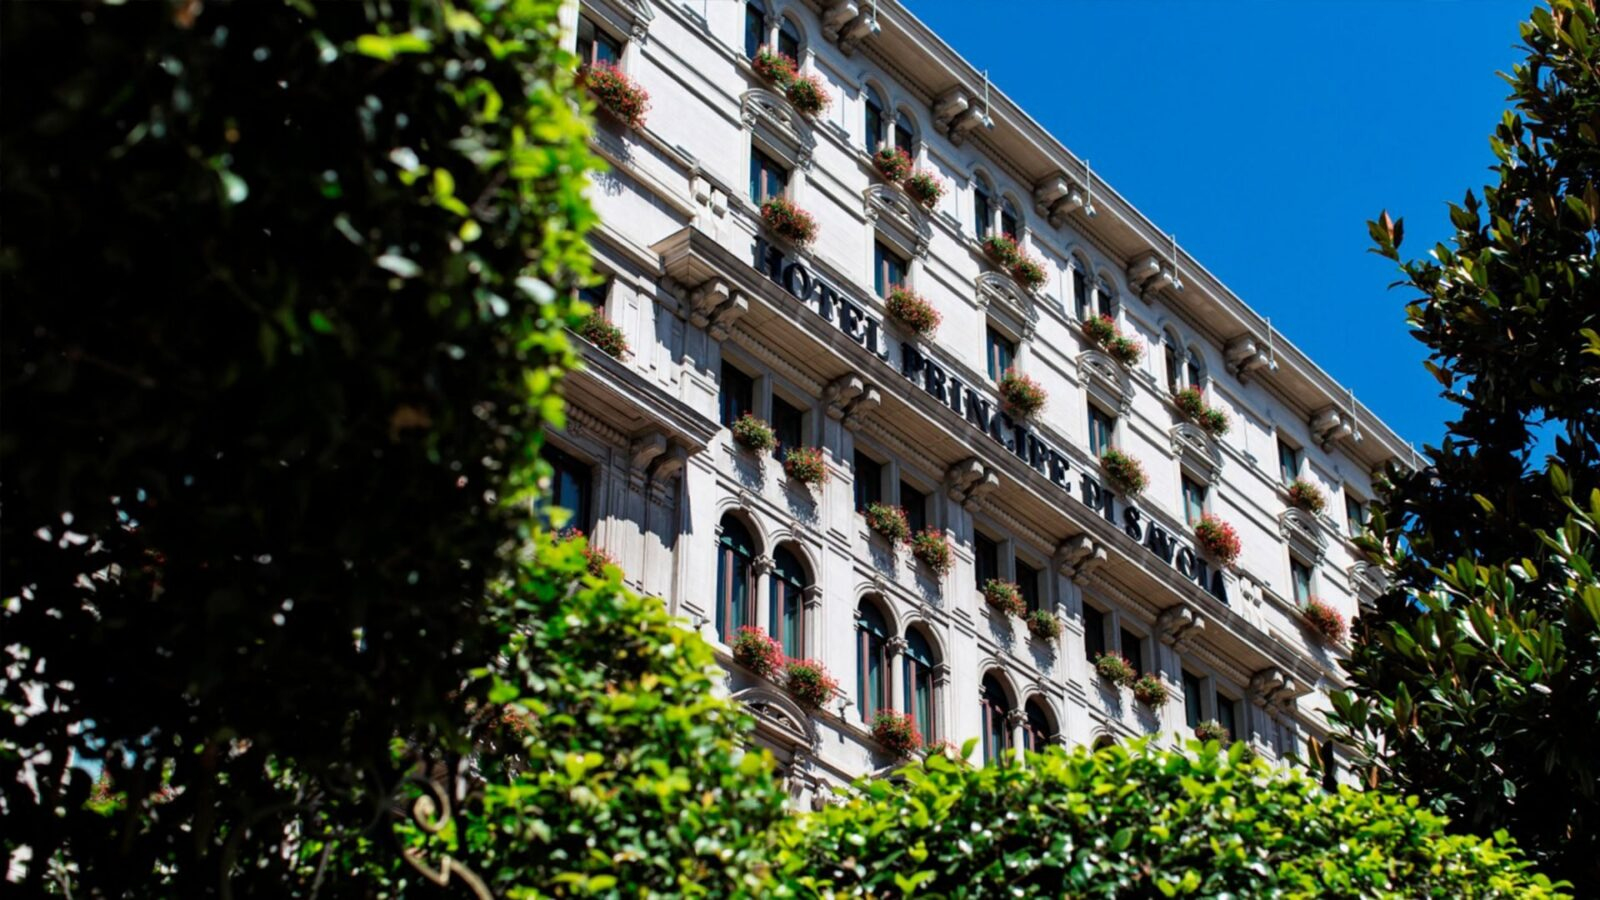 Hotel Principe di Savoia - Bed and Breakfast